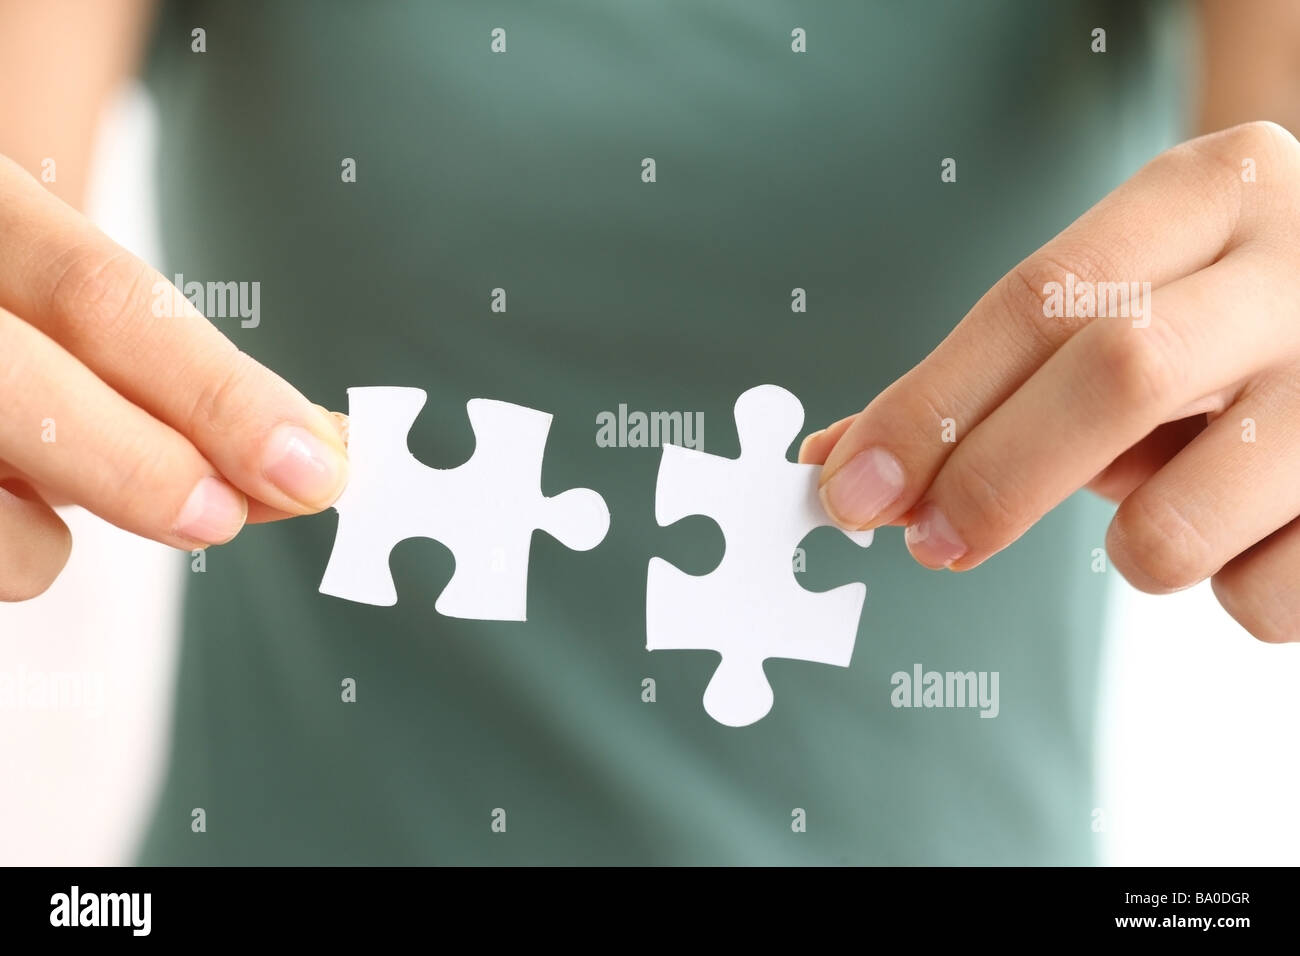 Hands holding two matching puzzle pieces - Stock Image